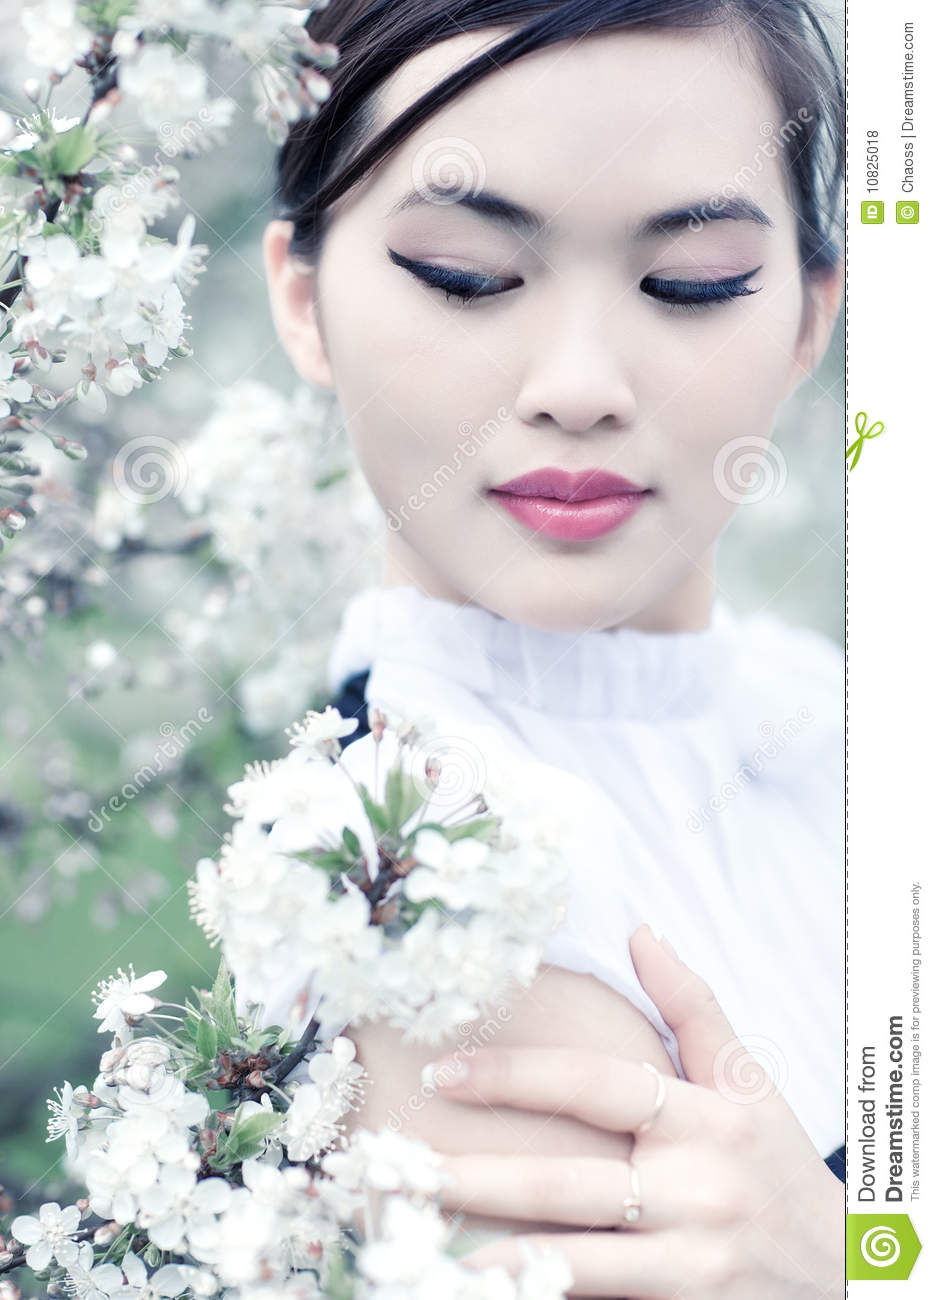 Cherry Young Model Dreamstime Royalty Free Stock